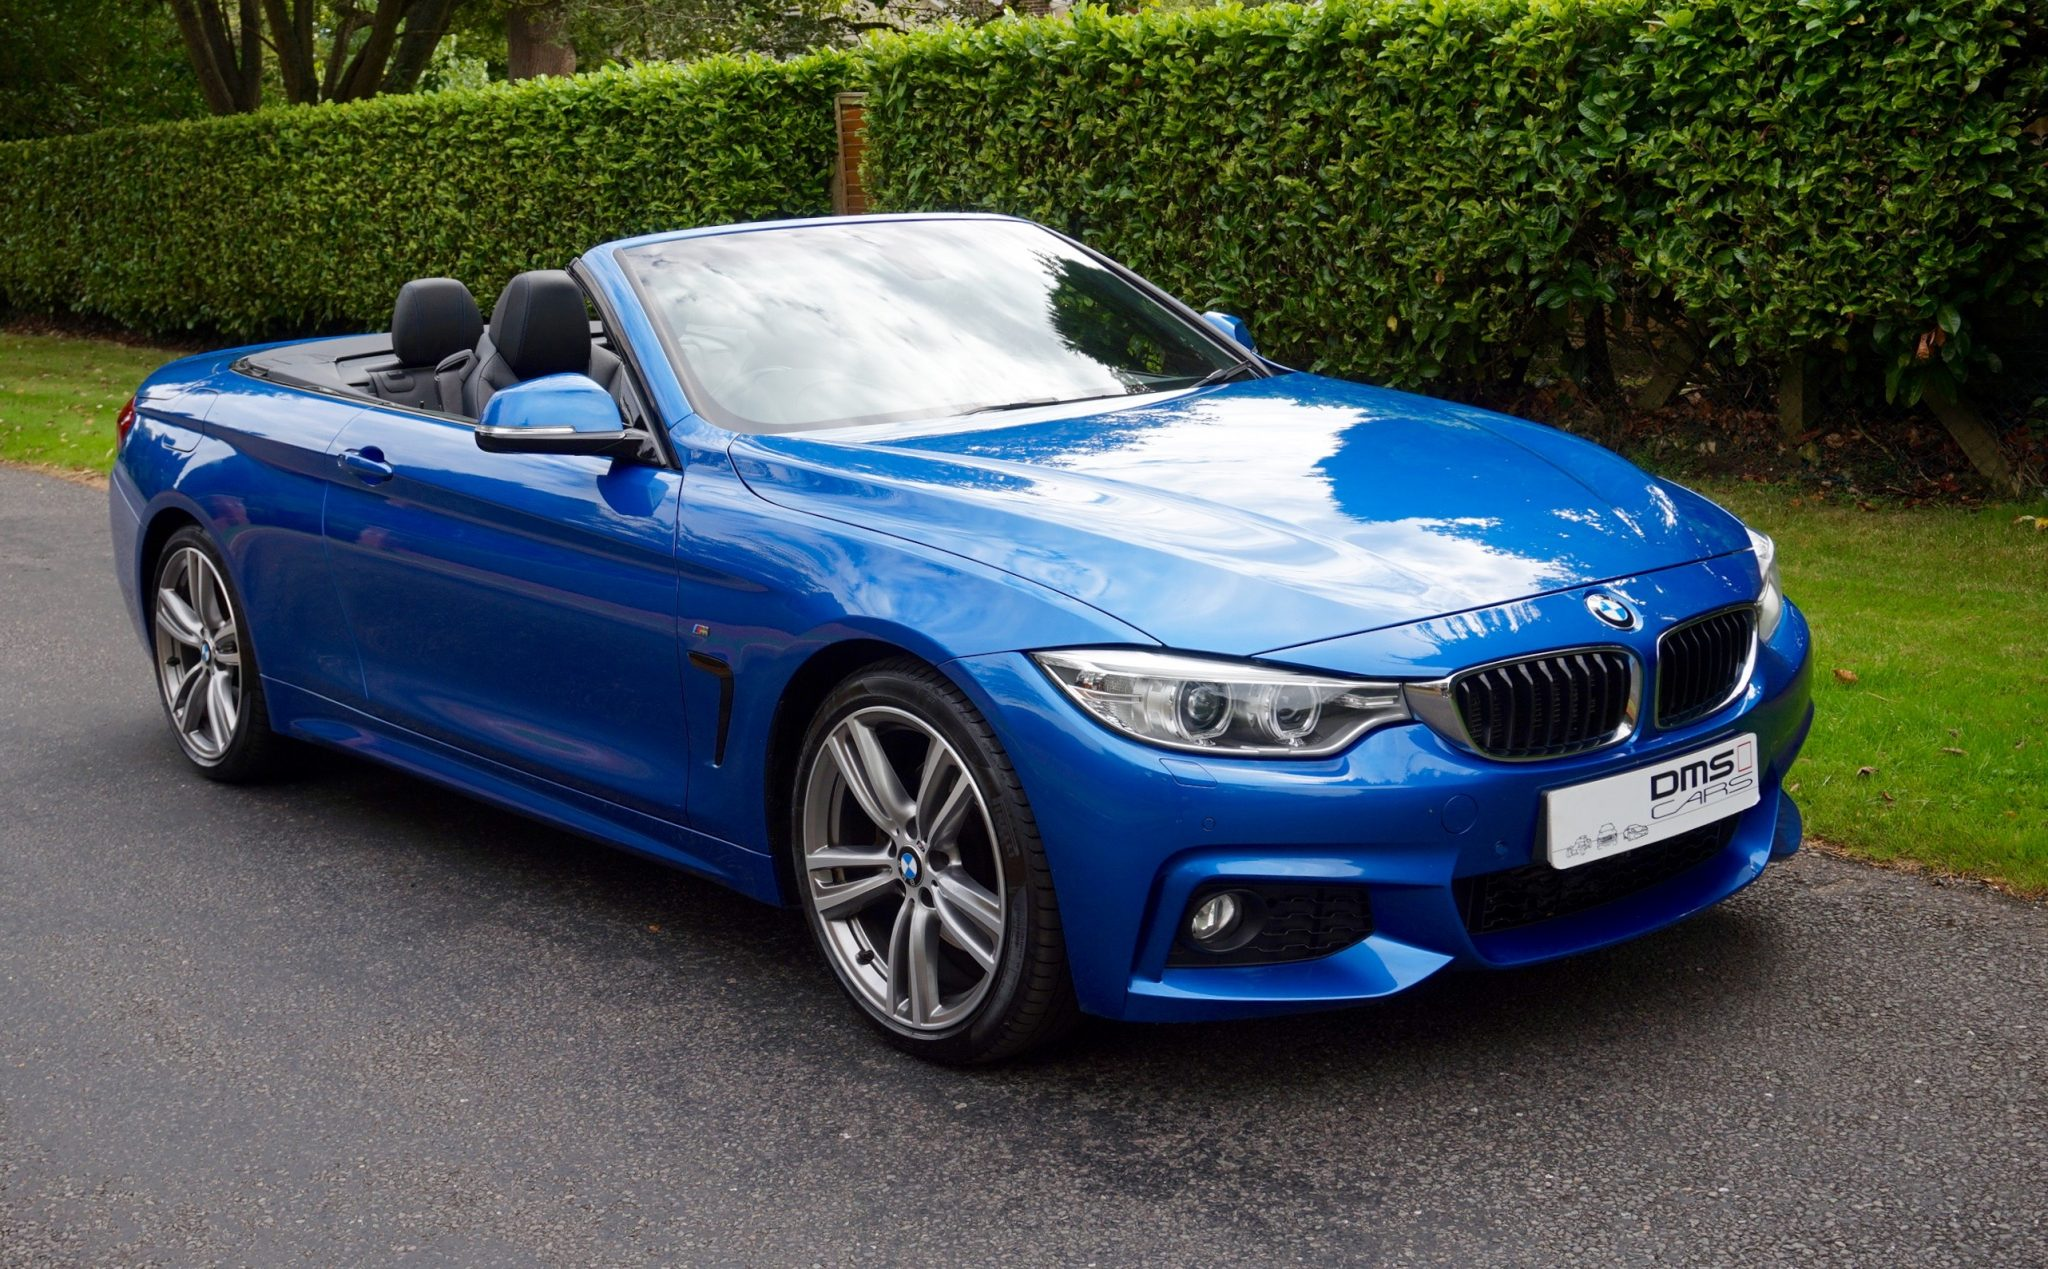 BMW 428I Convertible >> BMW 428i M Sport Convertible | DMS Cars